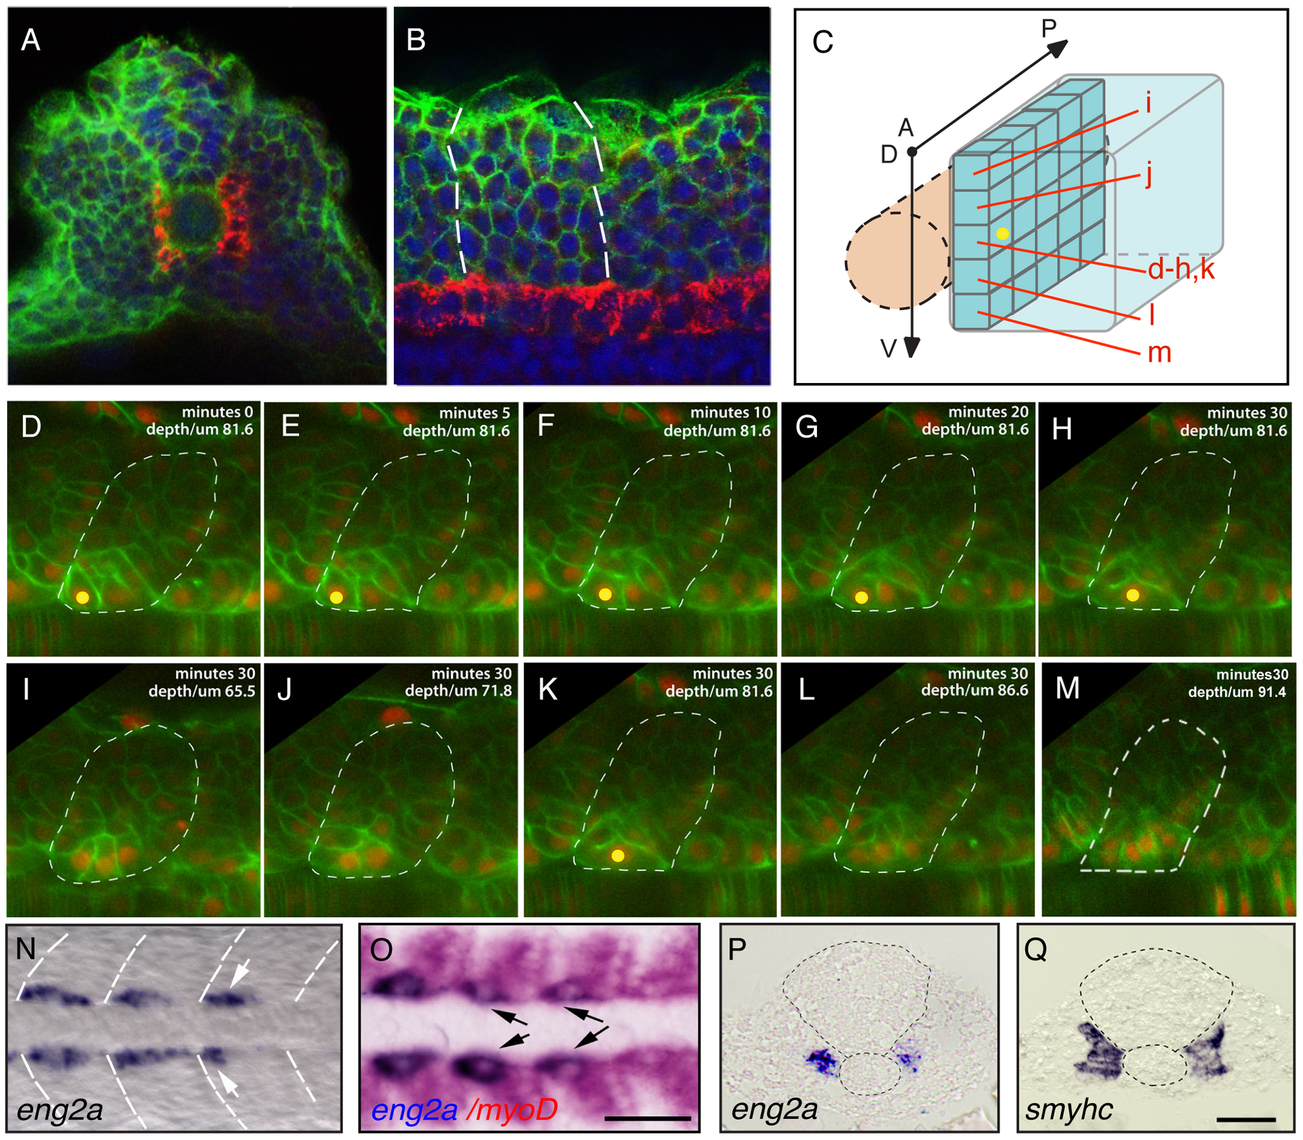 Distinct muscle precursor populations within the adaxial compartment.